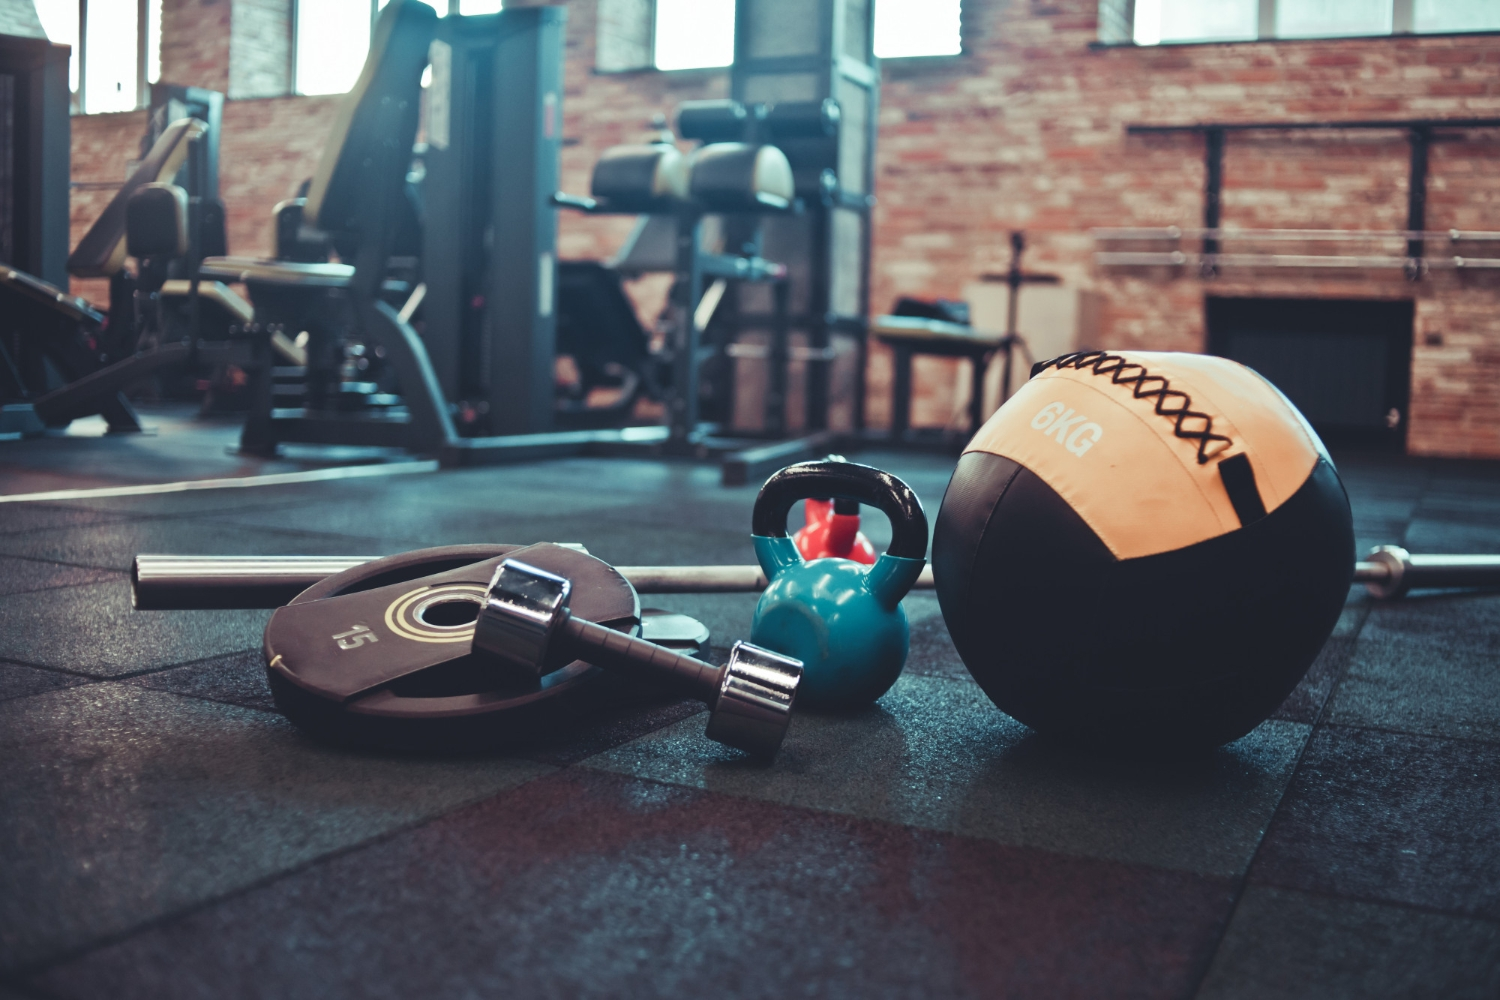 Disassembled barbell medicine ball kettlebell dumbbell lying floor gym sports equipment workout with free weight functional training